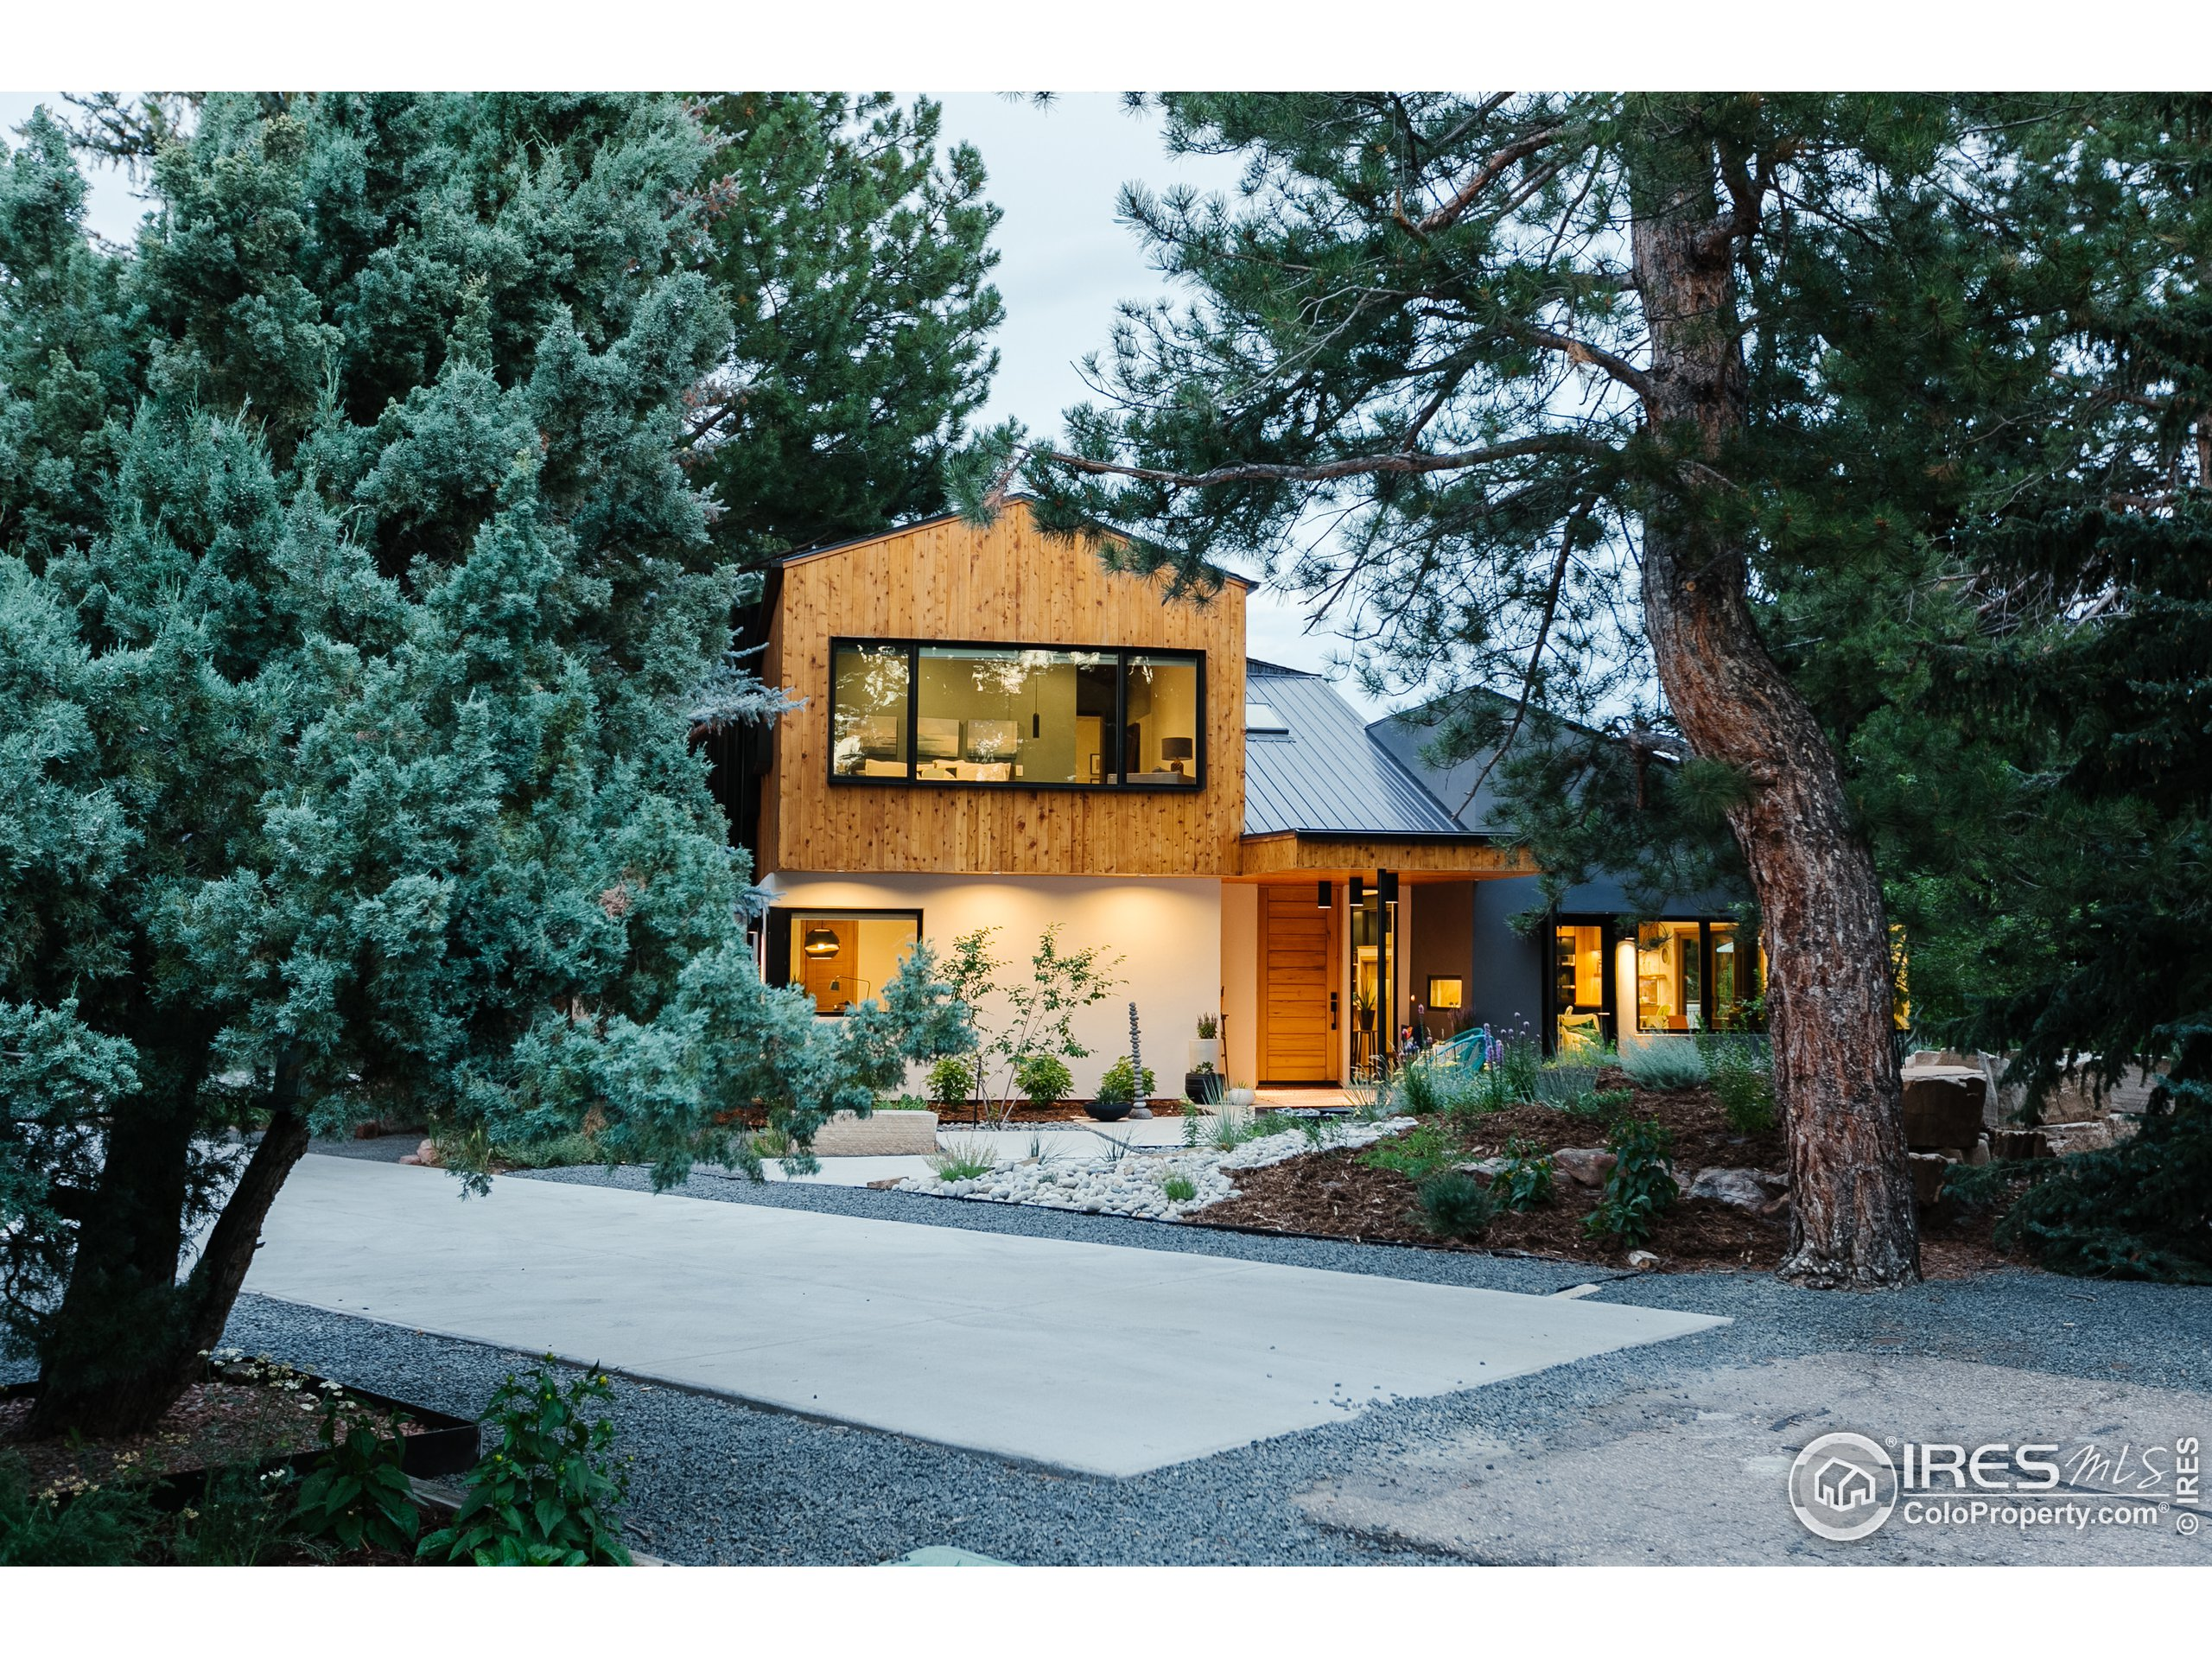 Modern masterpiece nestled in an oasis of old growth pines and centrally located in Fort Collins.